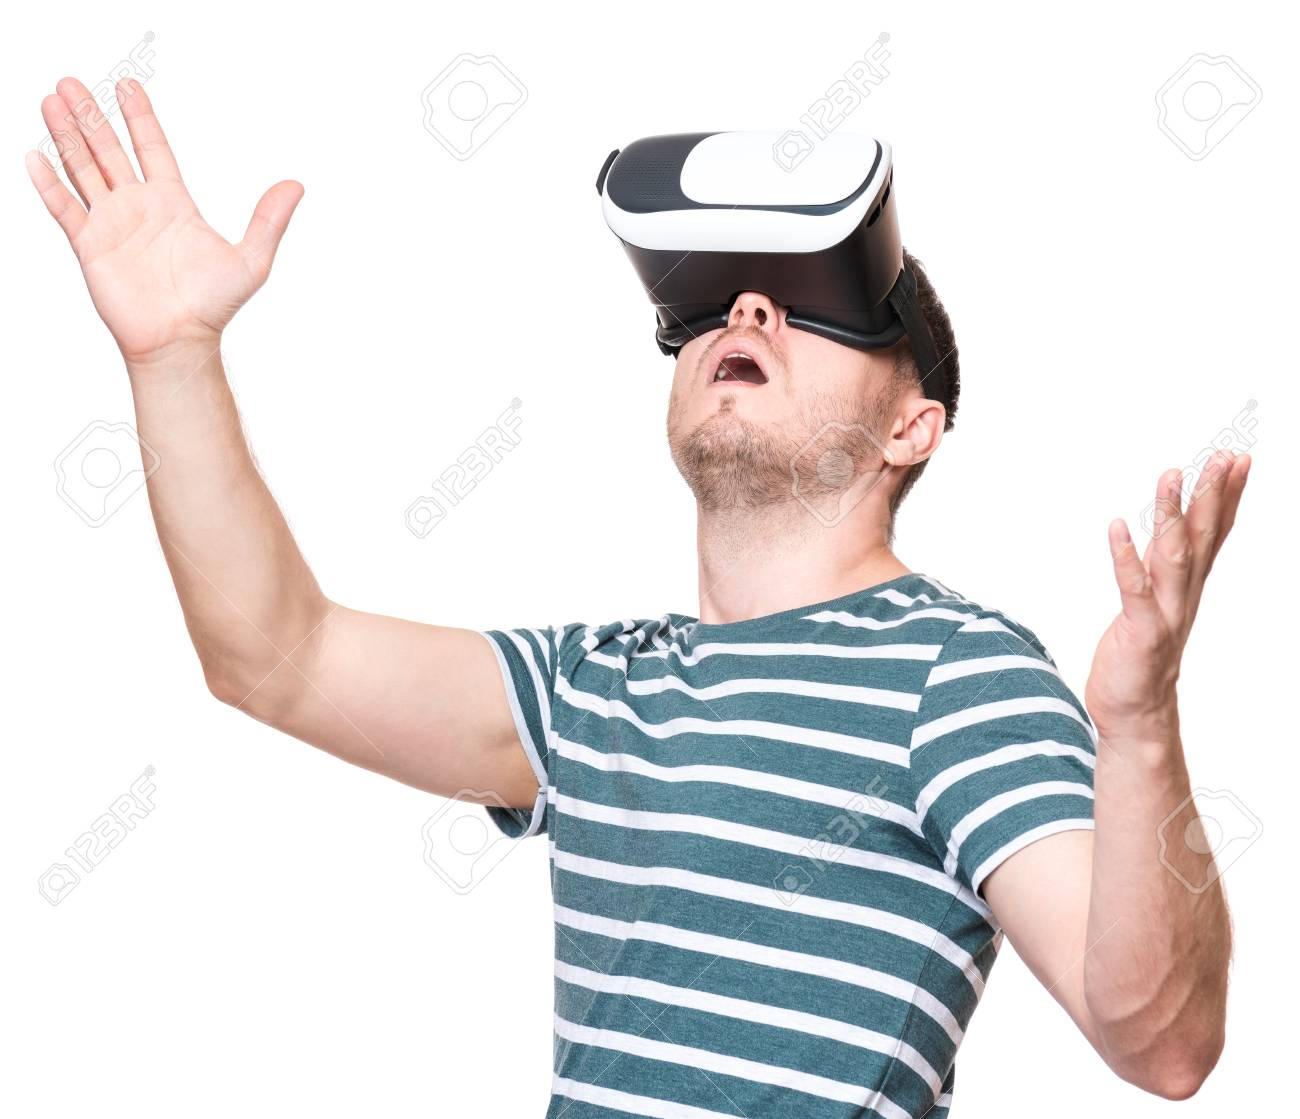 ef3f2817843 Amazed man wearing virtual reality goggles watching movies or playing video  games gesticulating hands